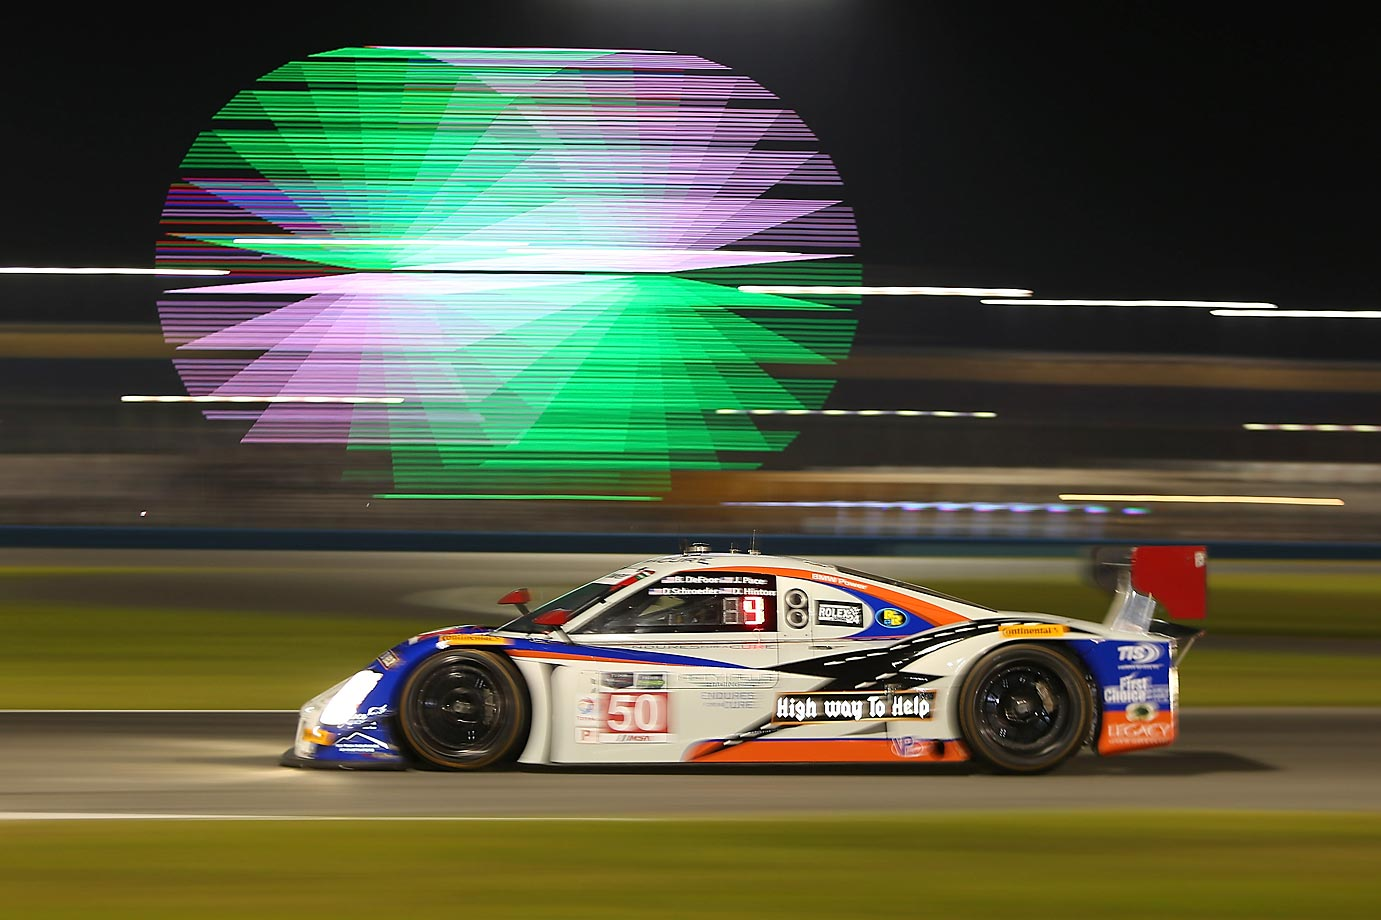 Night practice for the Rolex 24 At Daytona, at Daytona International Speedway.